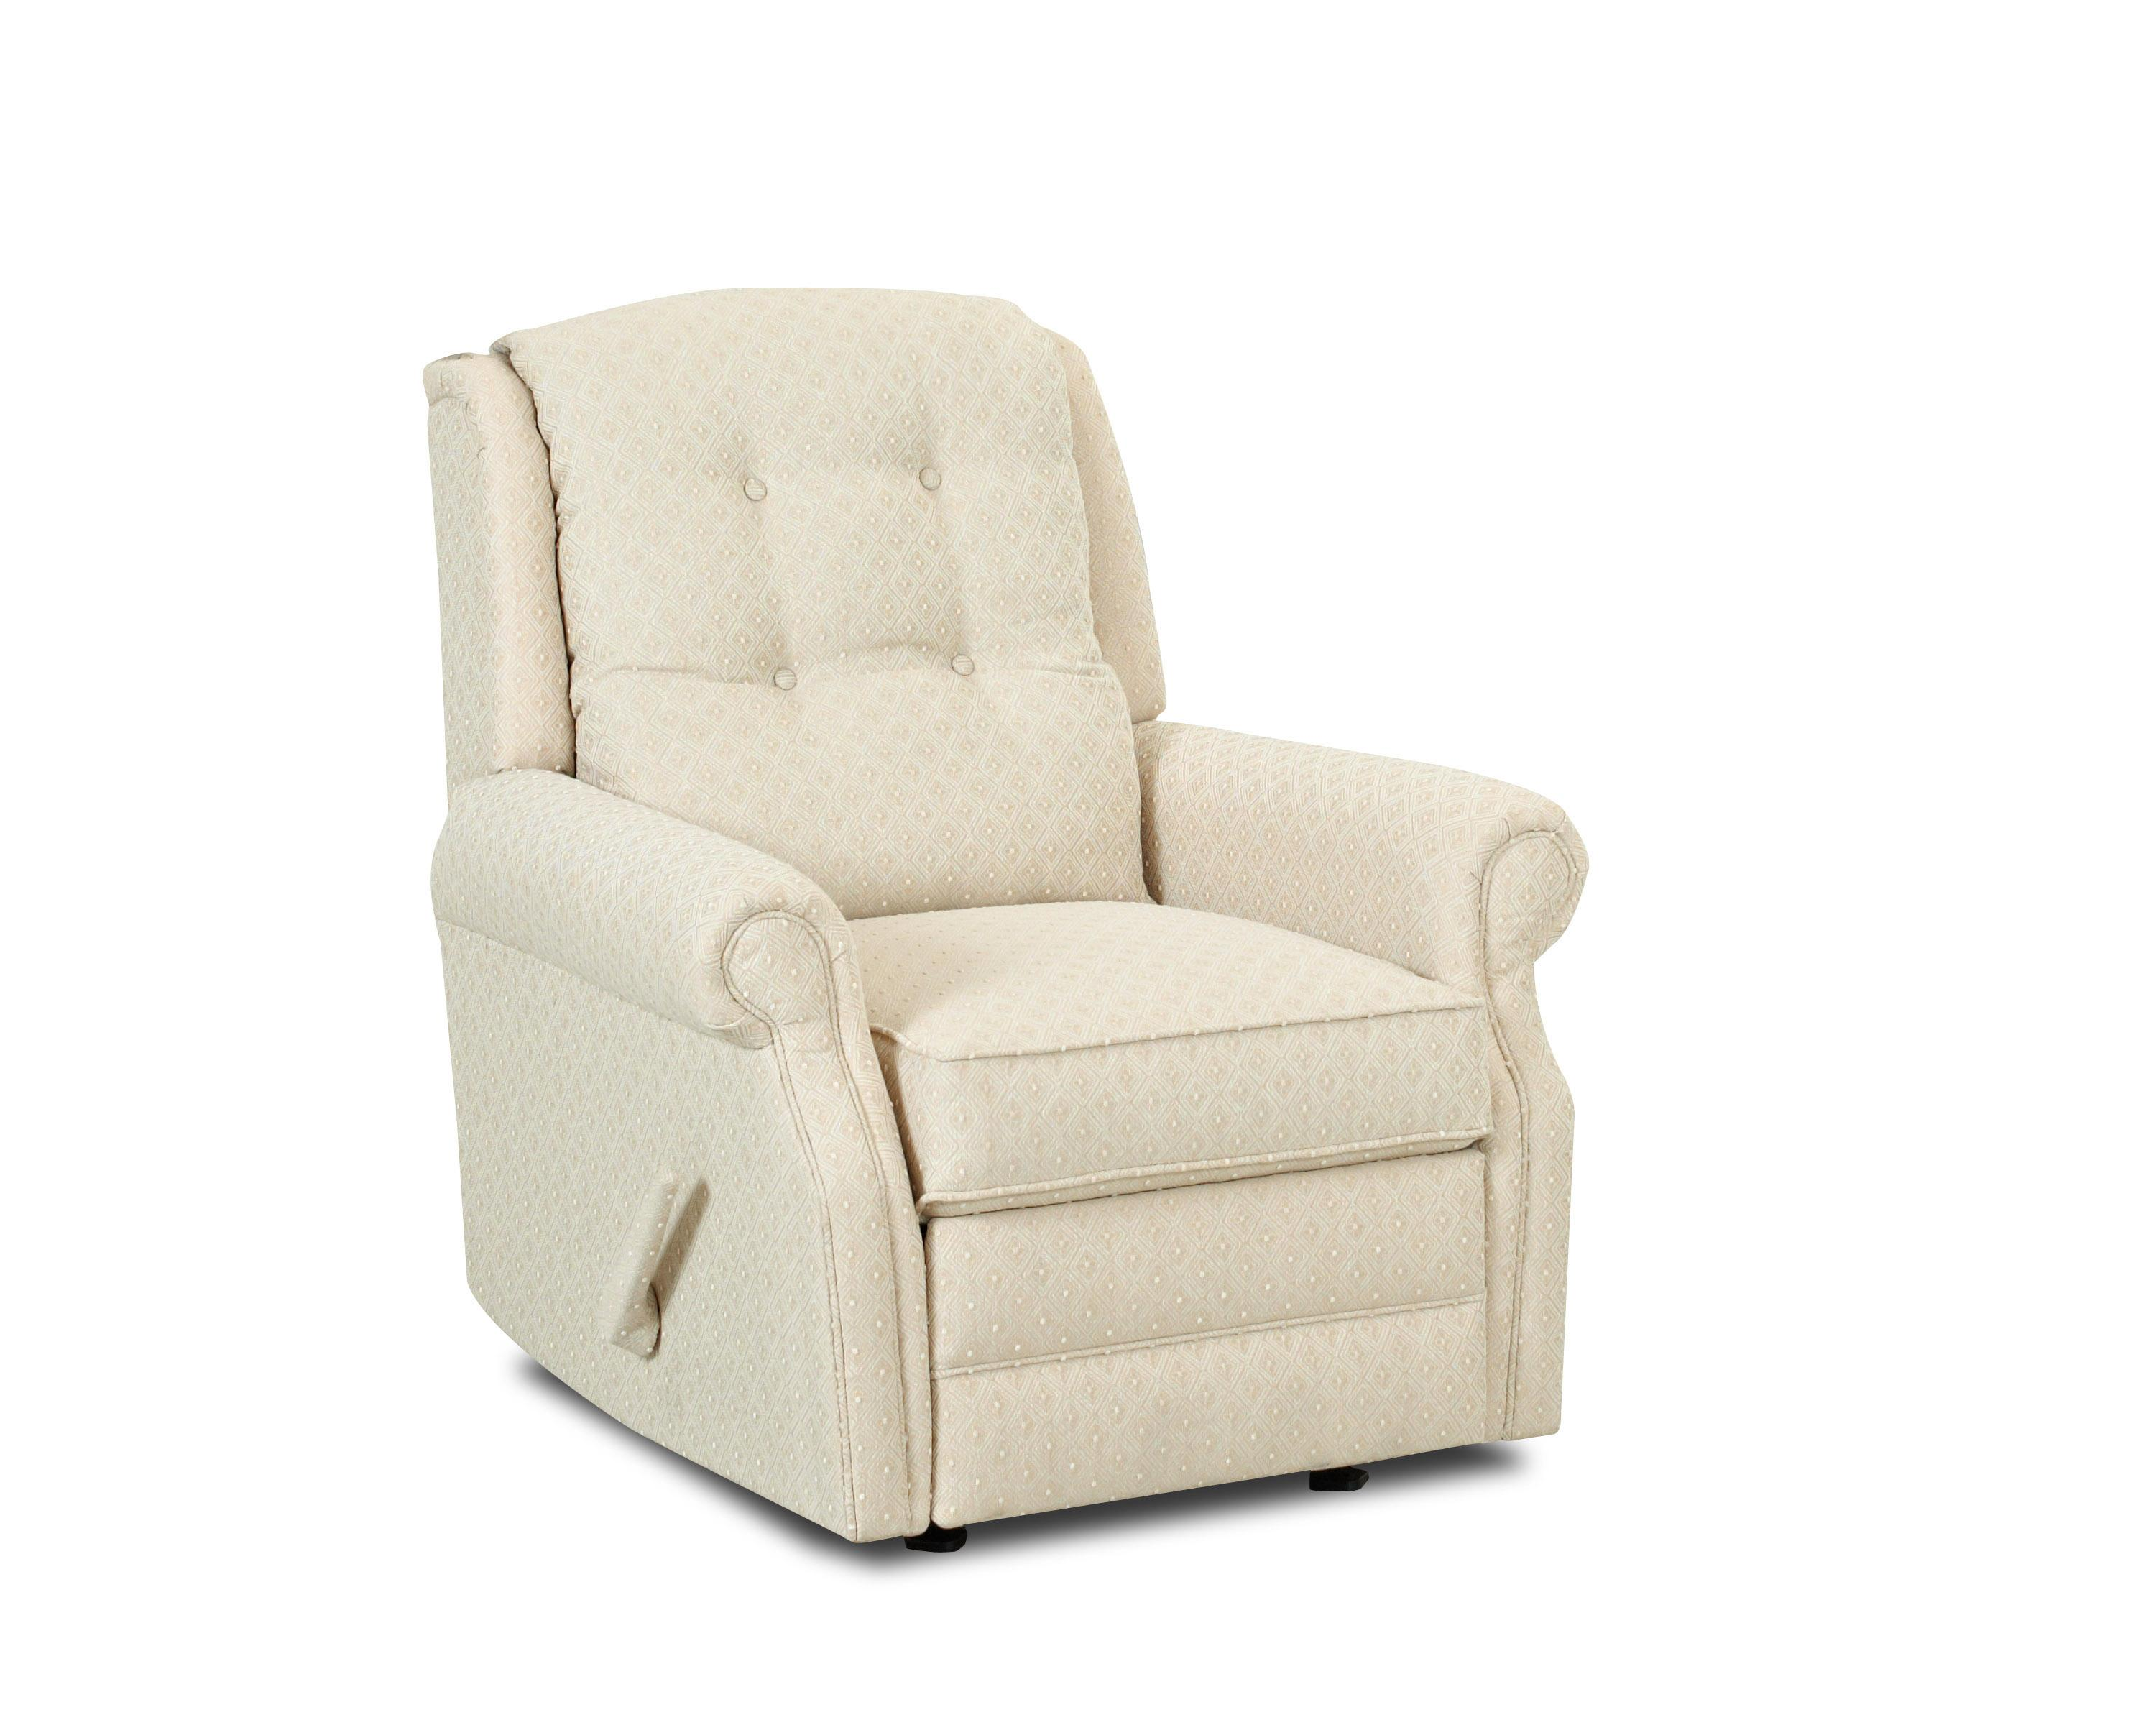 manual swivel rocking reclining chair with button tufting  sc 1 st  troumandwallsh.com & Small Recliner Chair. Small Swivel Glider Recliners Small Swivel ... islam-shia.org